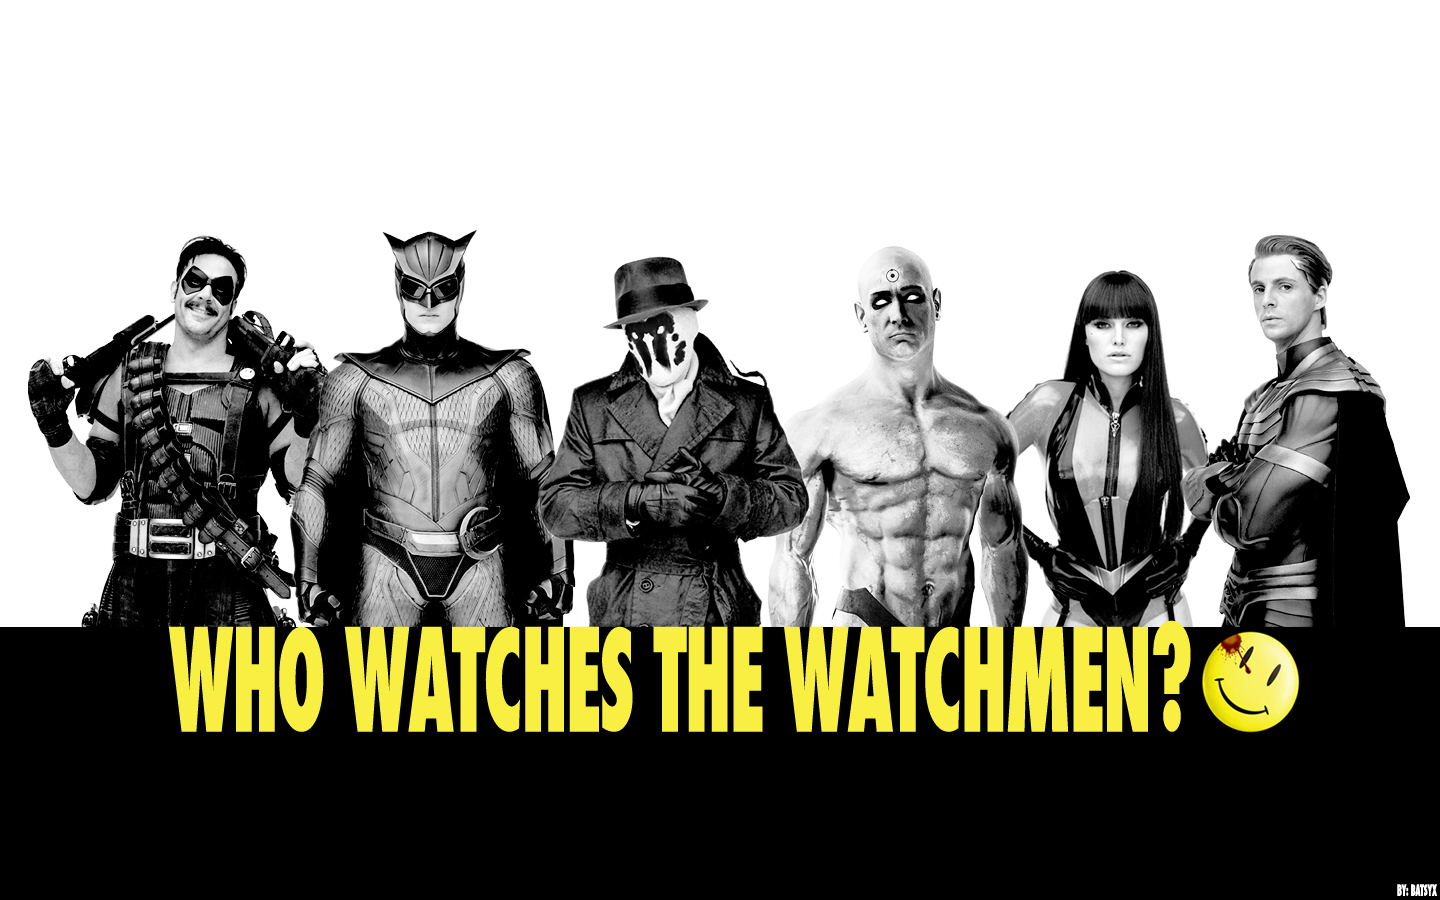 watchmen Wallpaper Who Watches the Watchmen? - Watchmen Wallpaper (14960175) - Fanpop